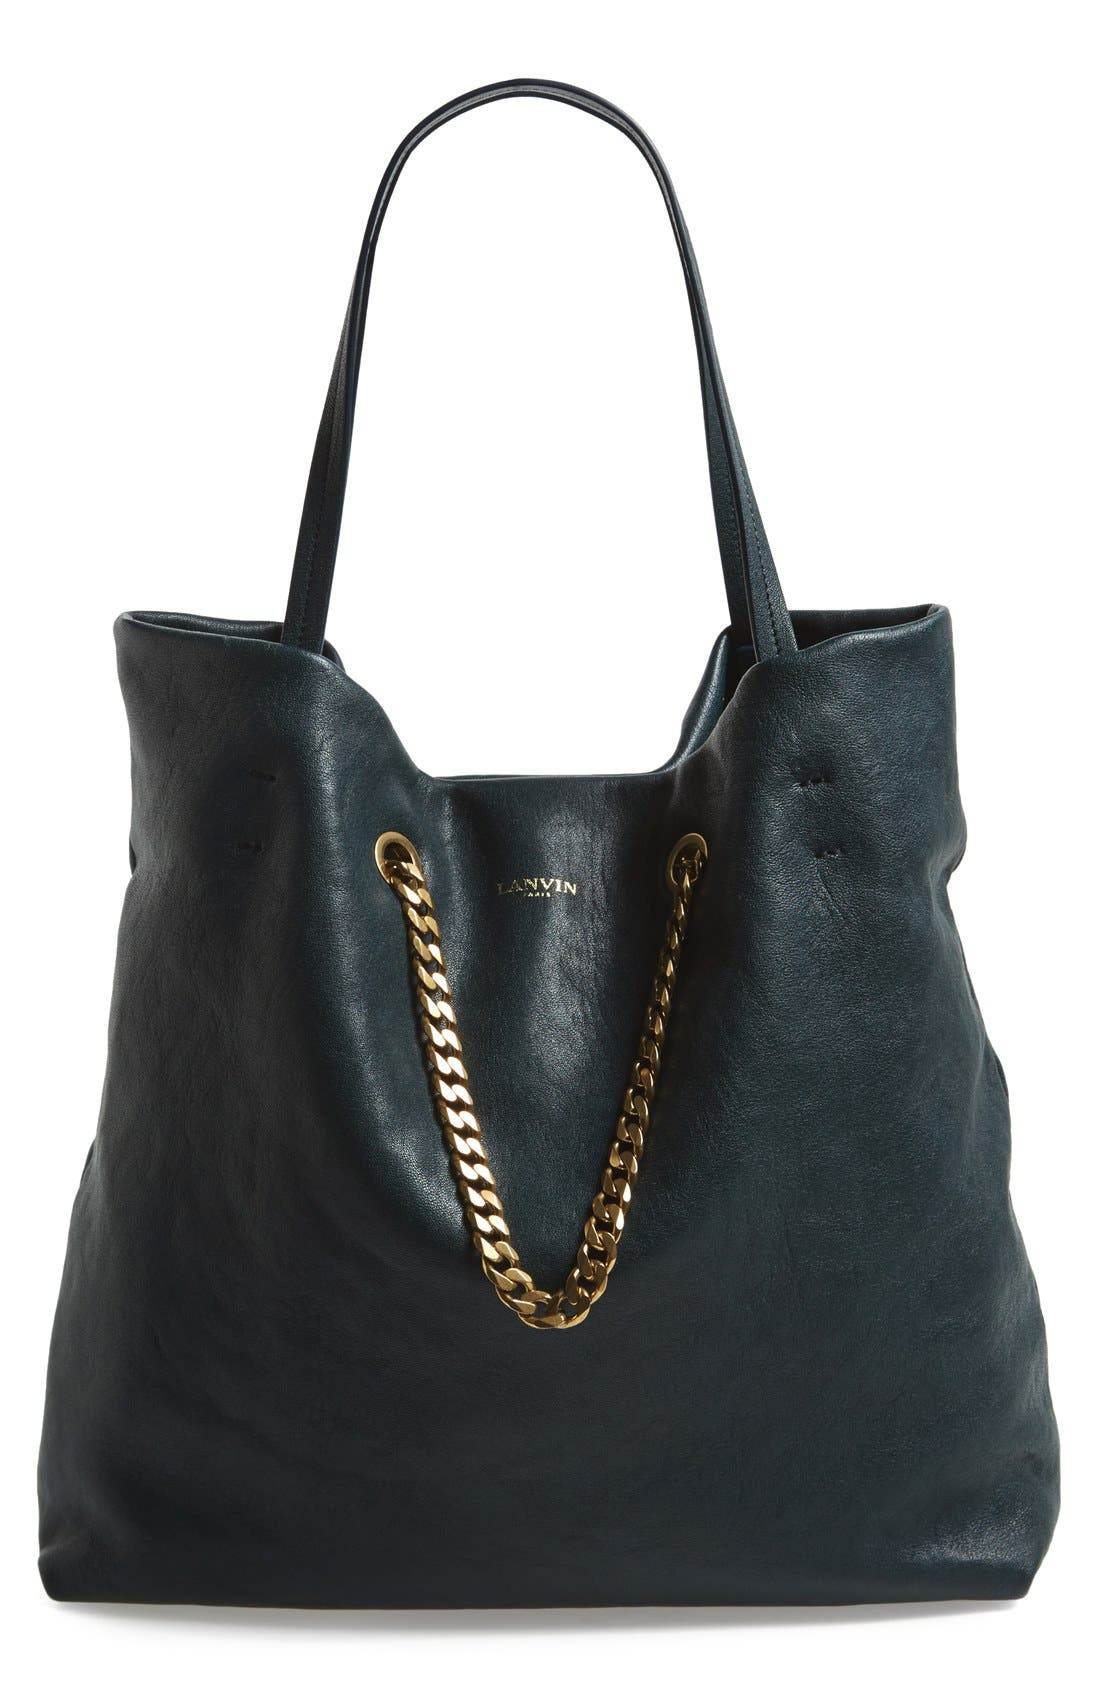 Alternate Image 1 Selected - Lanvin 'Medium Carry Me' Leather Tote